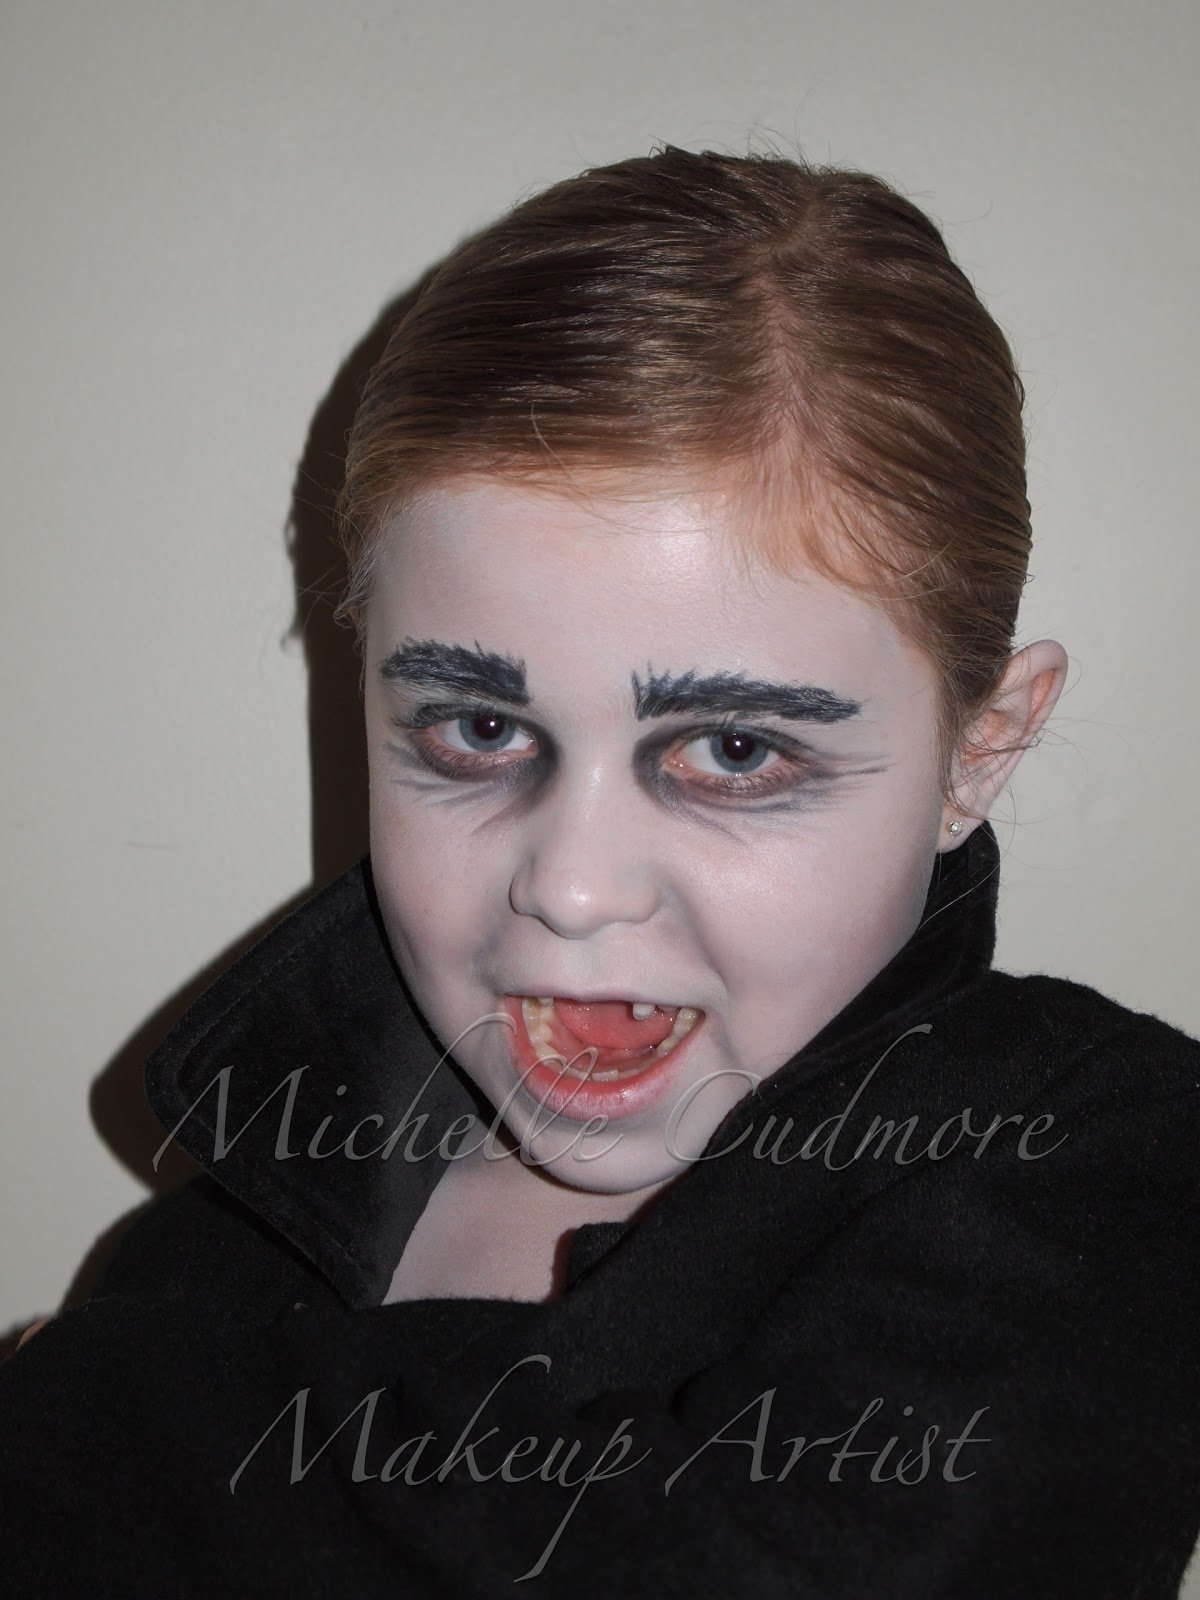 10 Cute Vampire Makeup Ideas For Kids how to apply vampire makeup holiday ideas pinterest vampire 2020